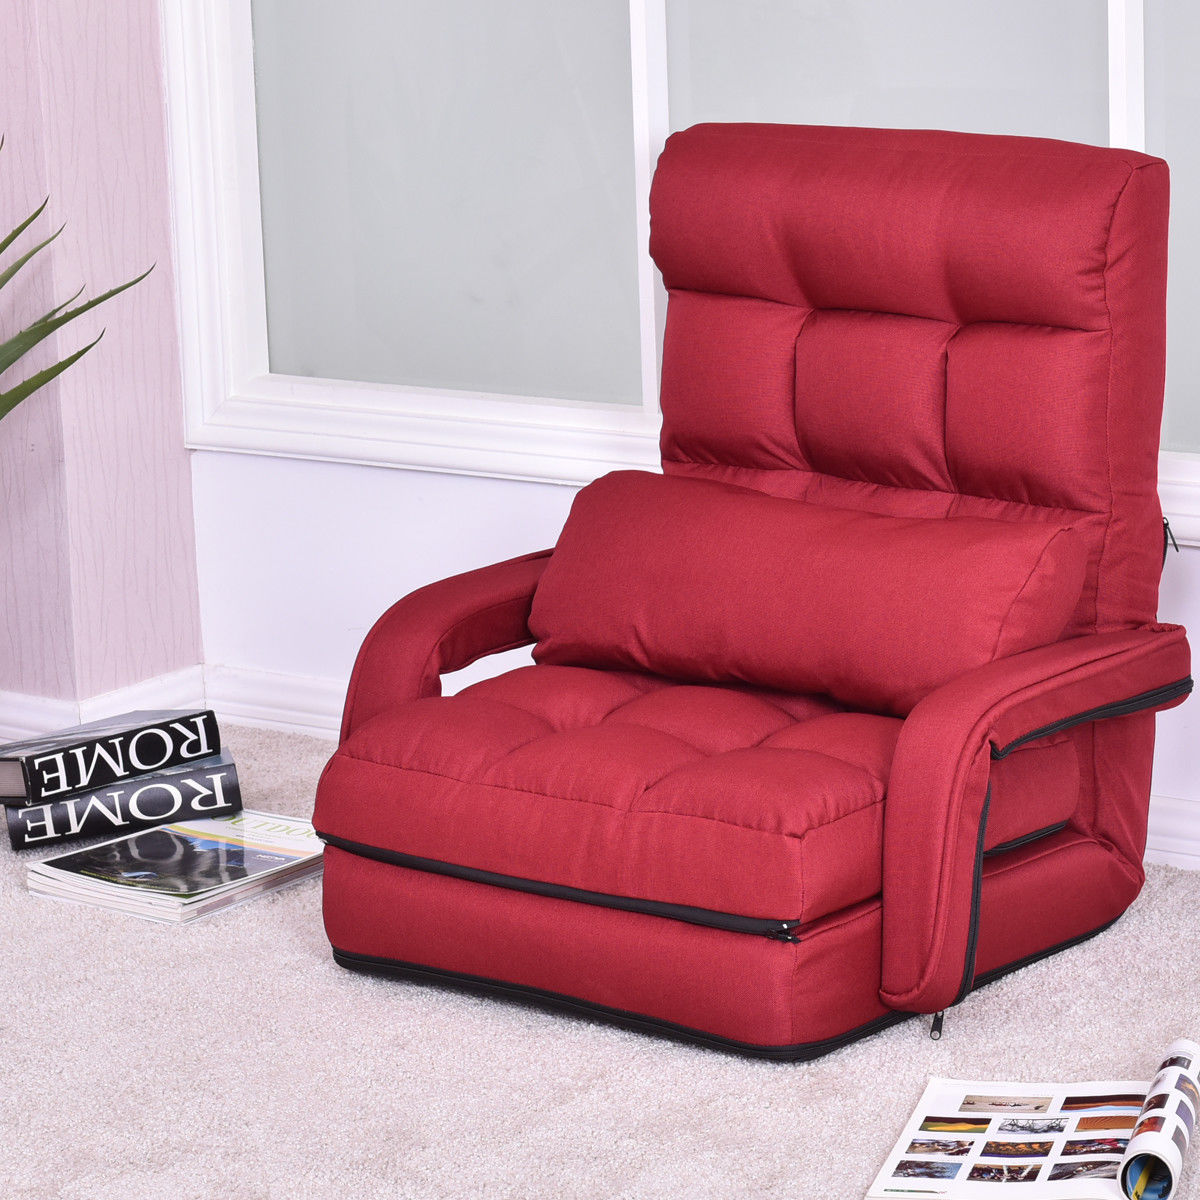 Costway Folding Lazy Sofa Lounger Bed Floor Chair Sofa with Armrests and pillow,Beige ,Red,Blue